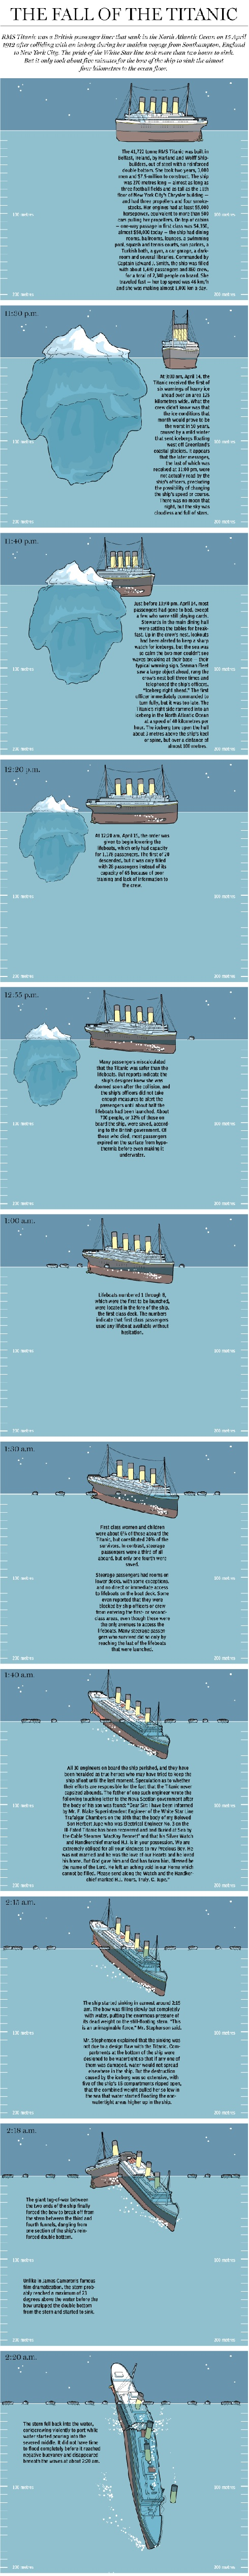 The fall of Titanic 1 #infographic